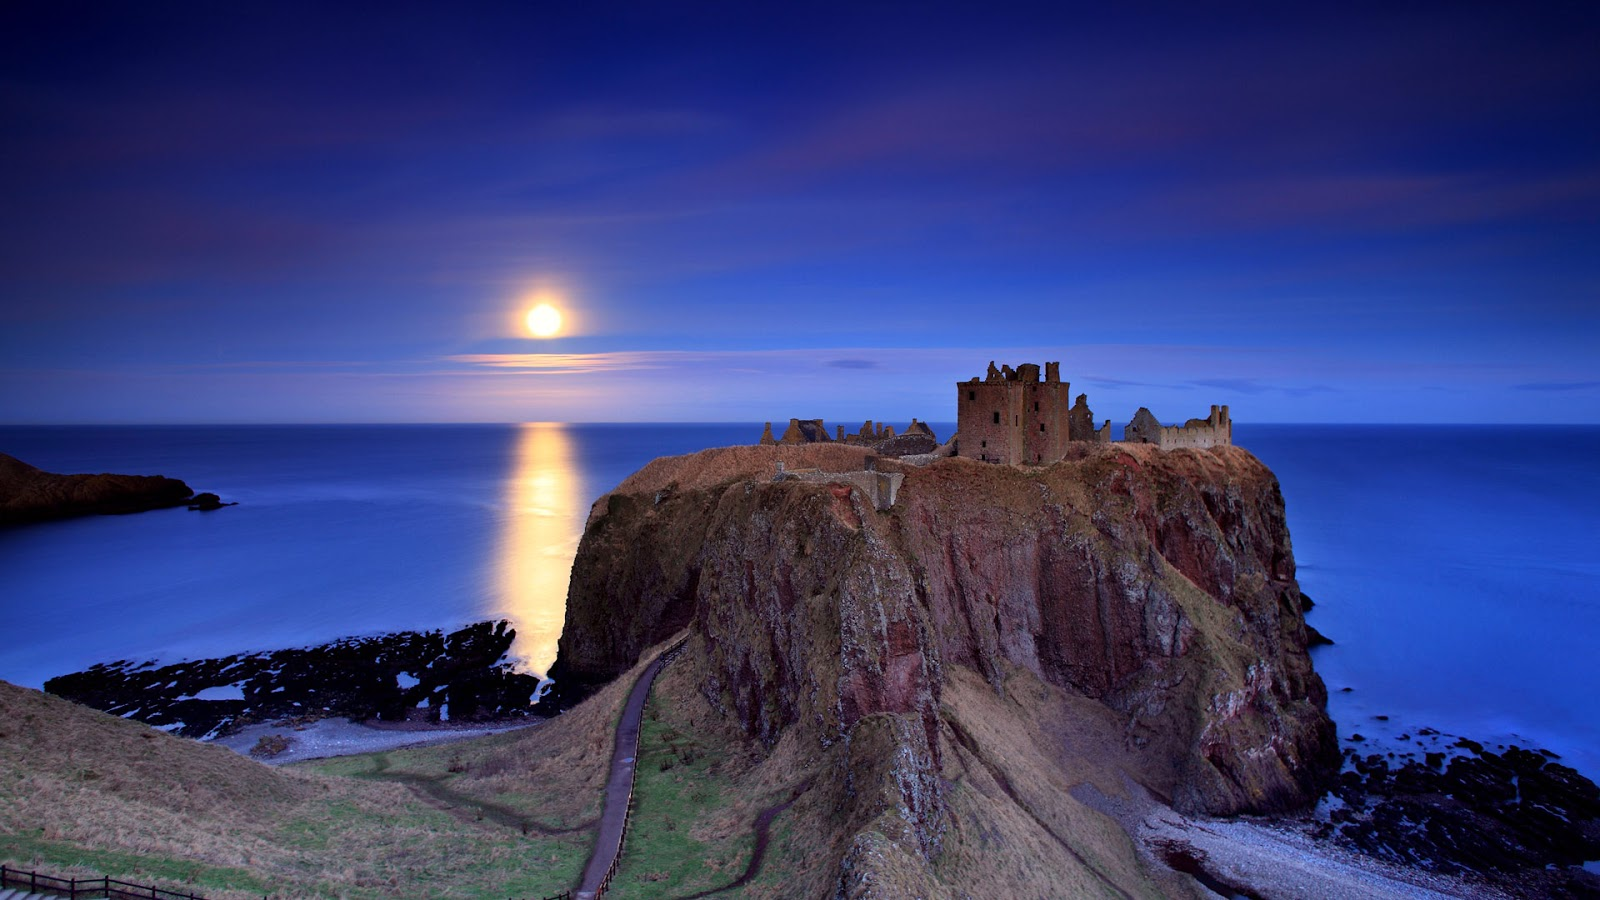 Full moon rising over Dunnottar Castle near Stonehaven on the northeast coast of Scotland